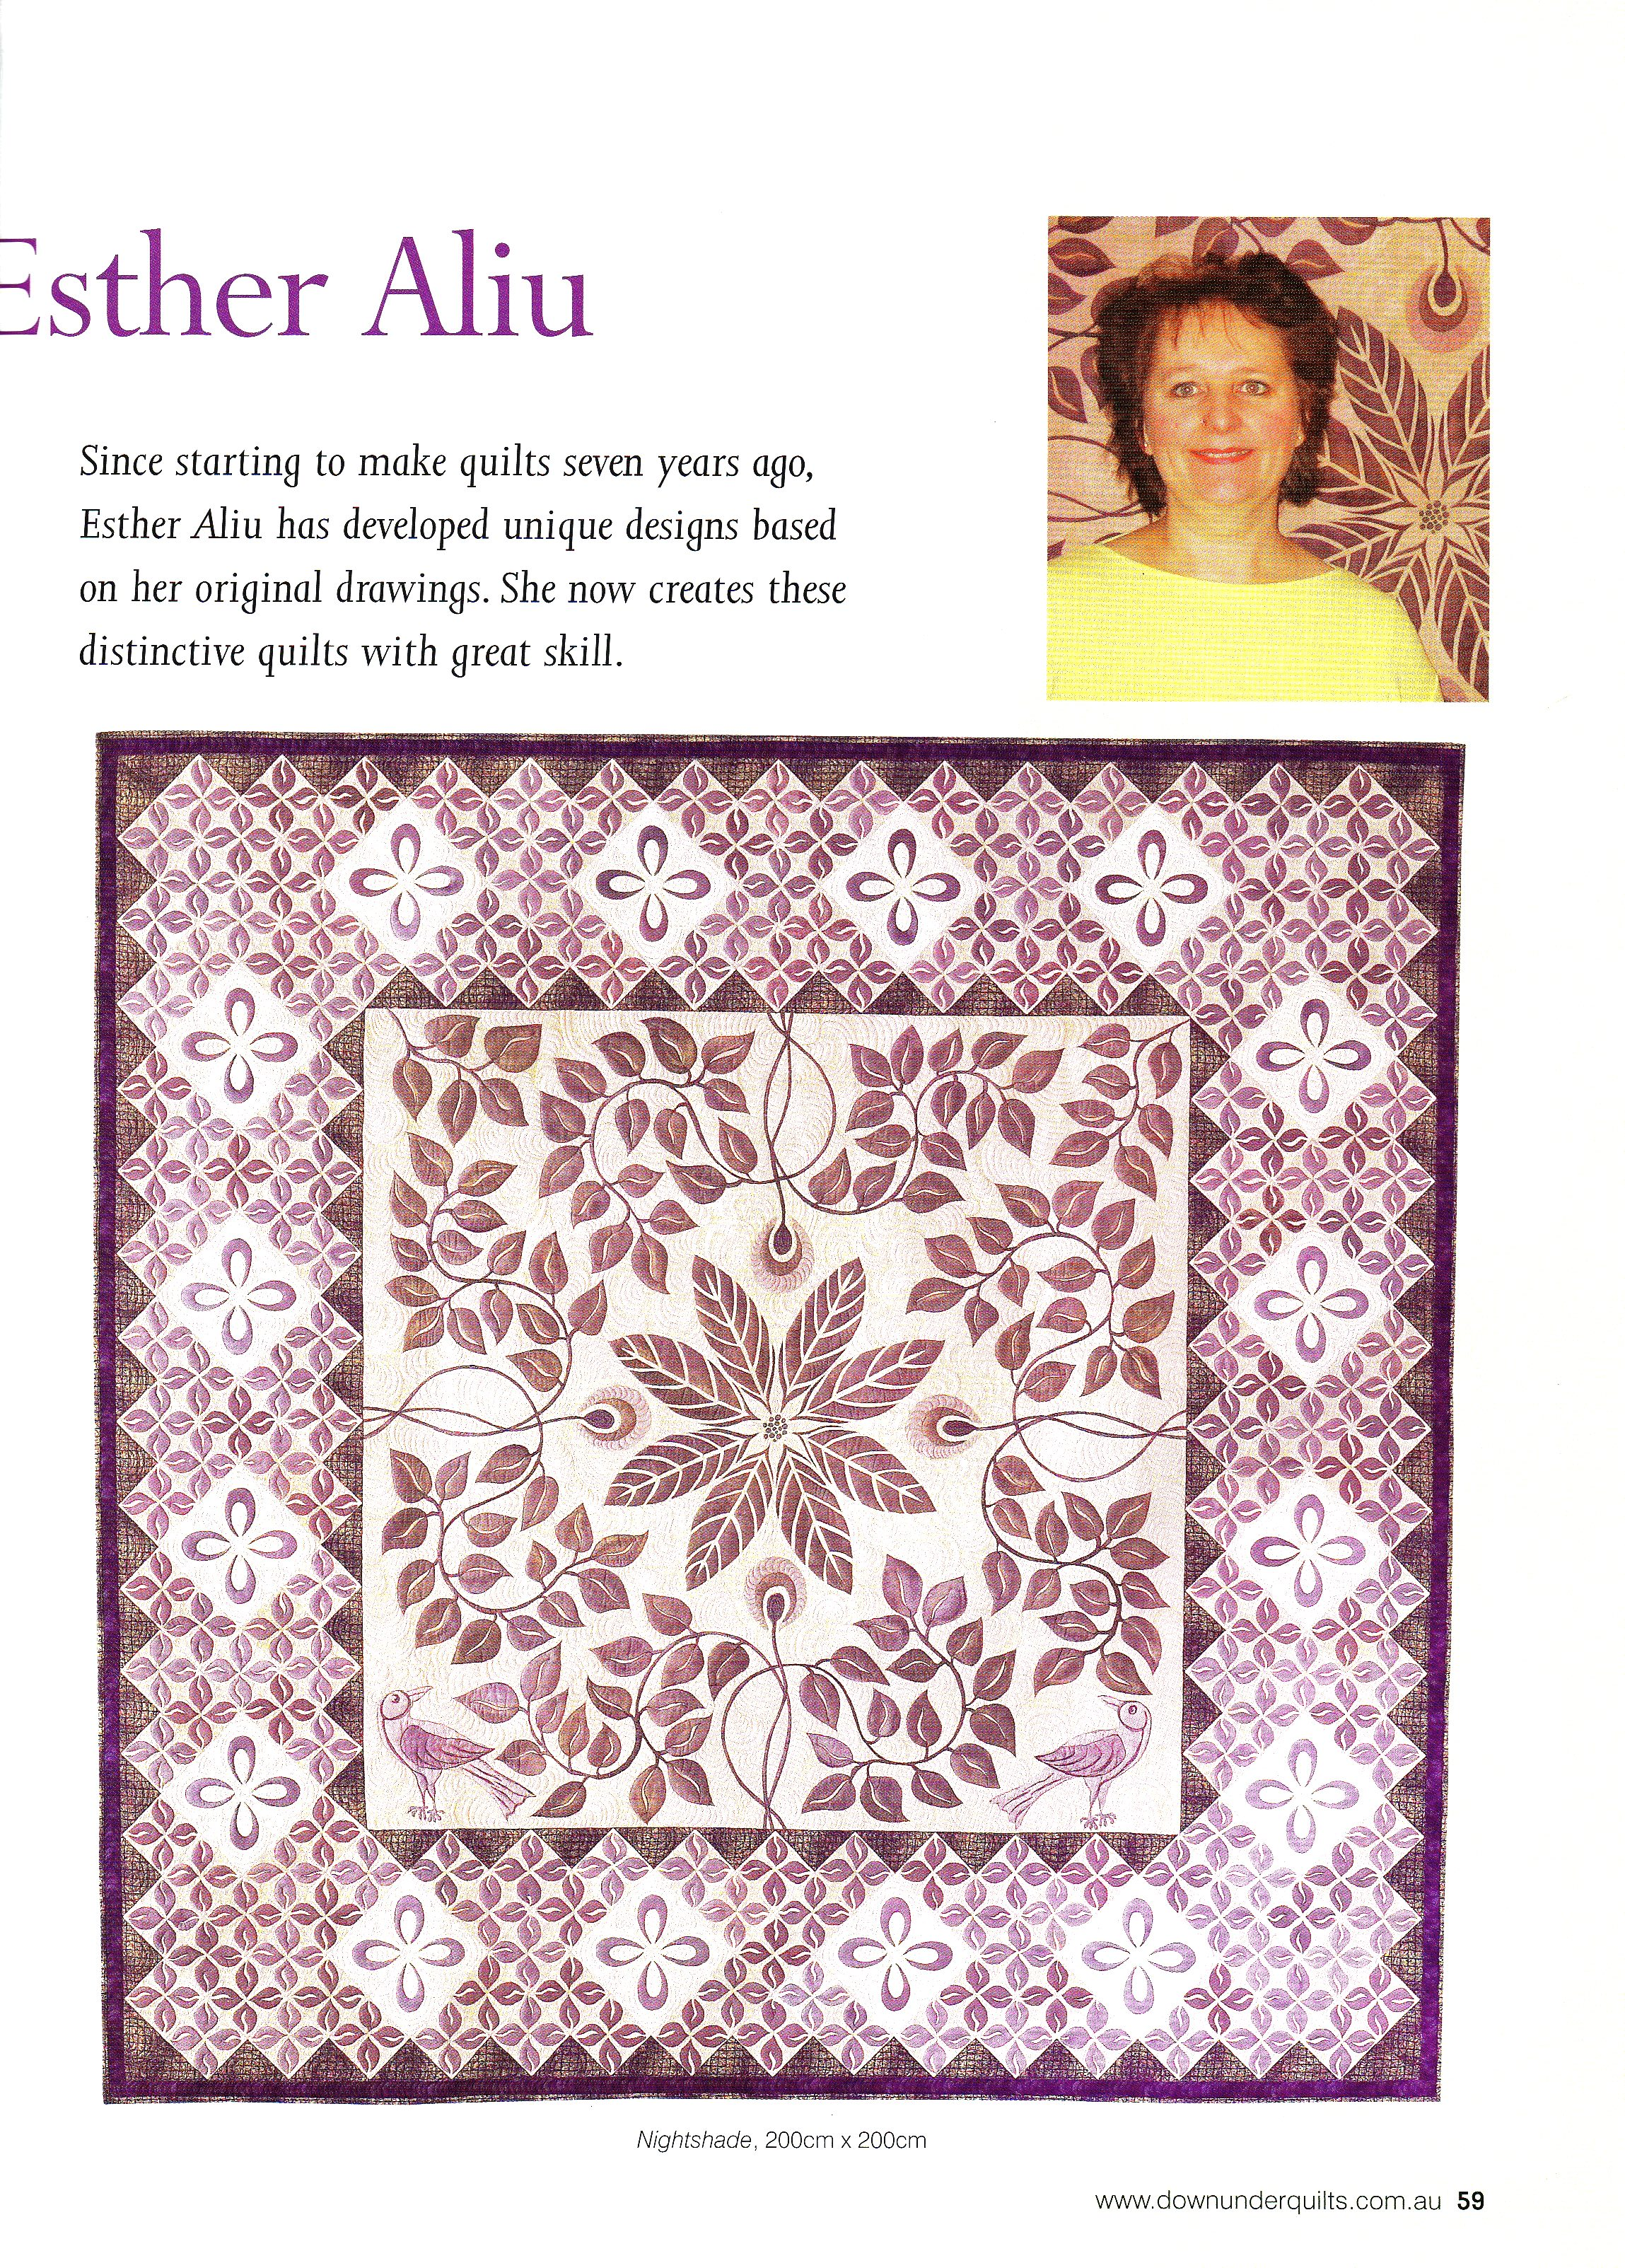 Down Under Quilts 2007 #115